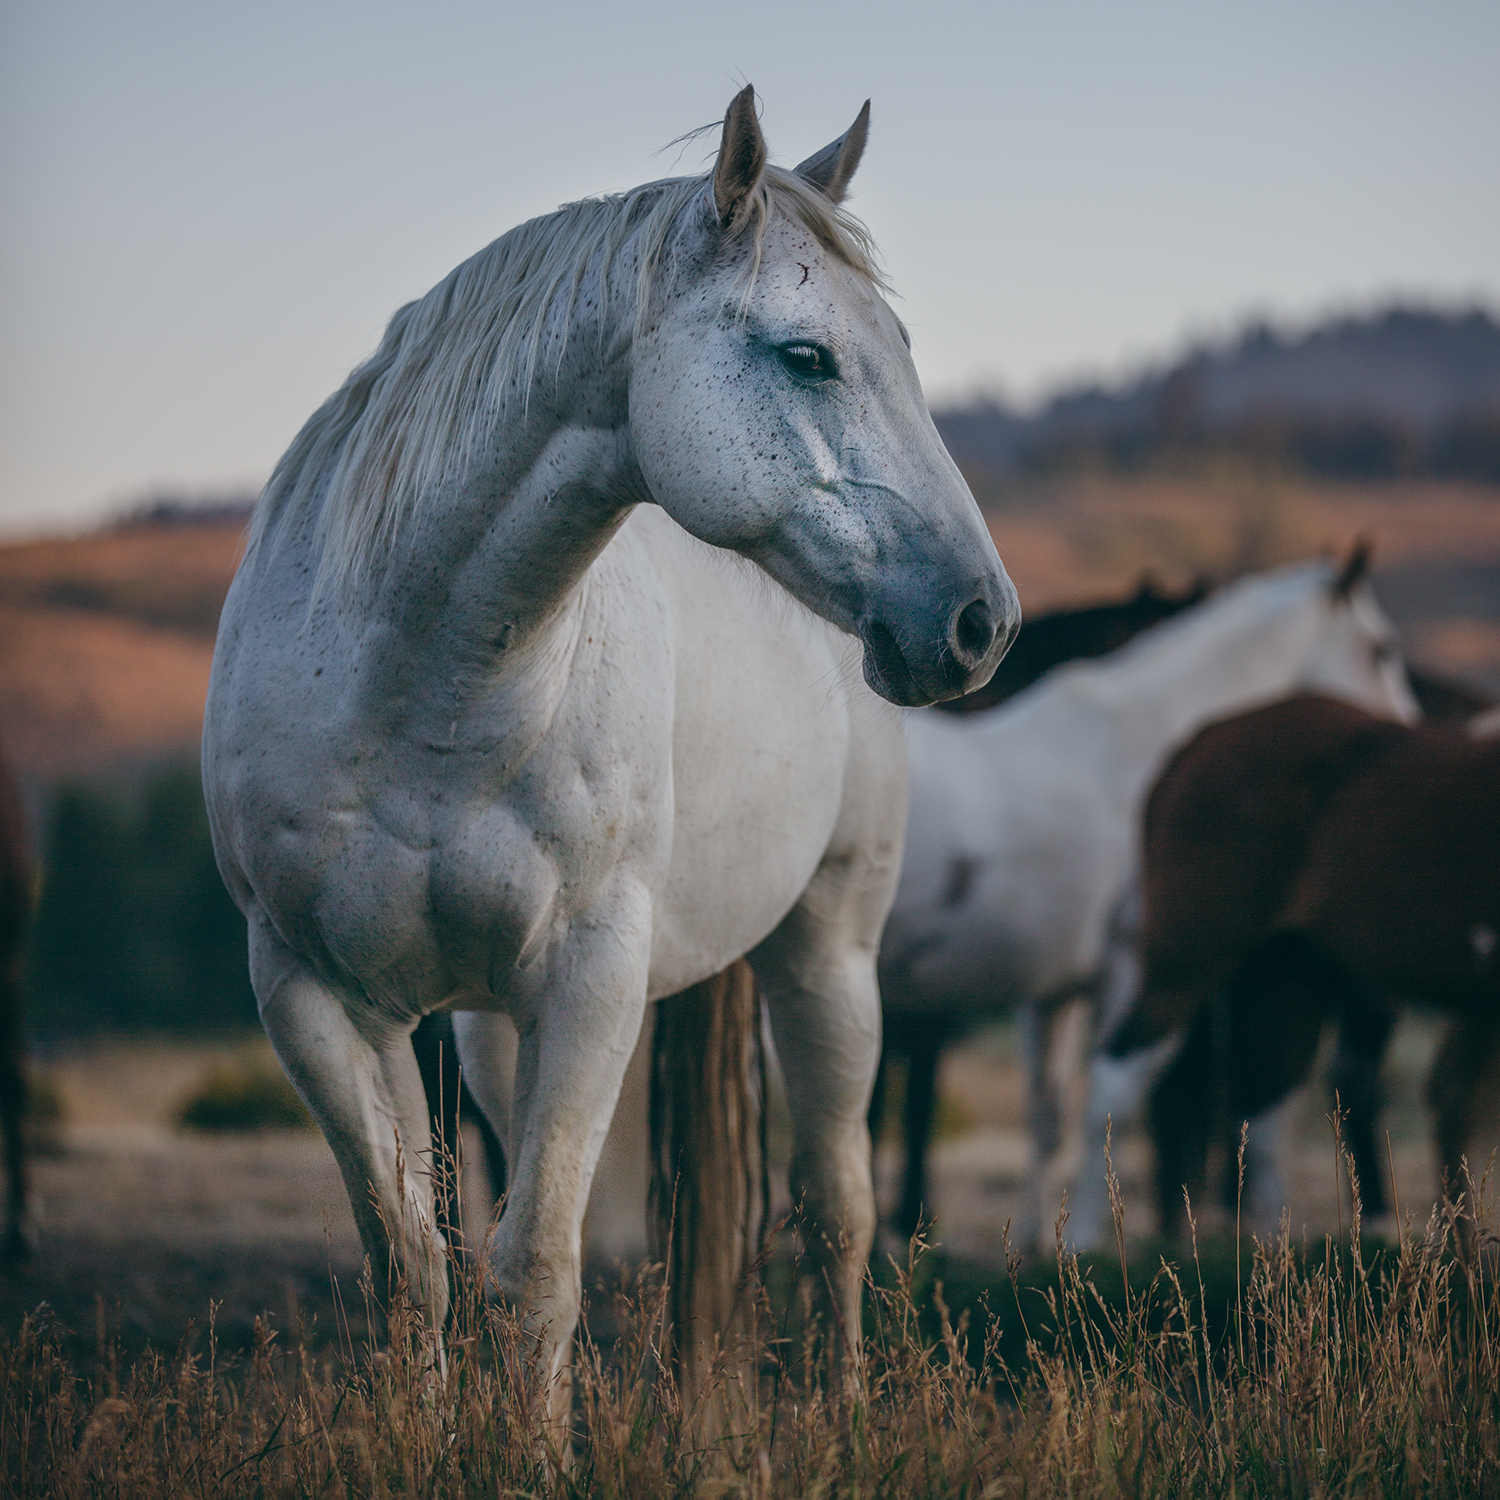 IN MANY CASES, THESE HORSES HAVE BEEN GIVEN UP ON AND WE ARE THEIR LAST HOPE -